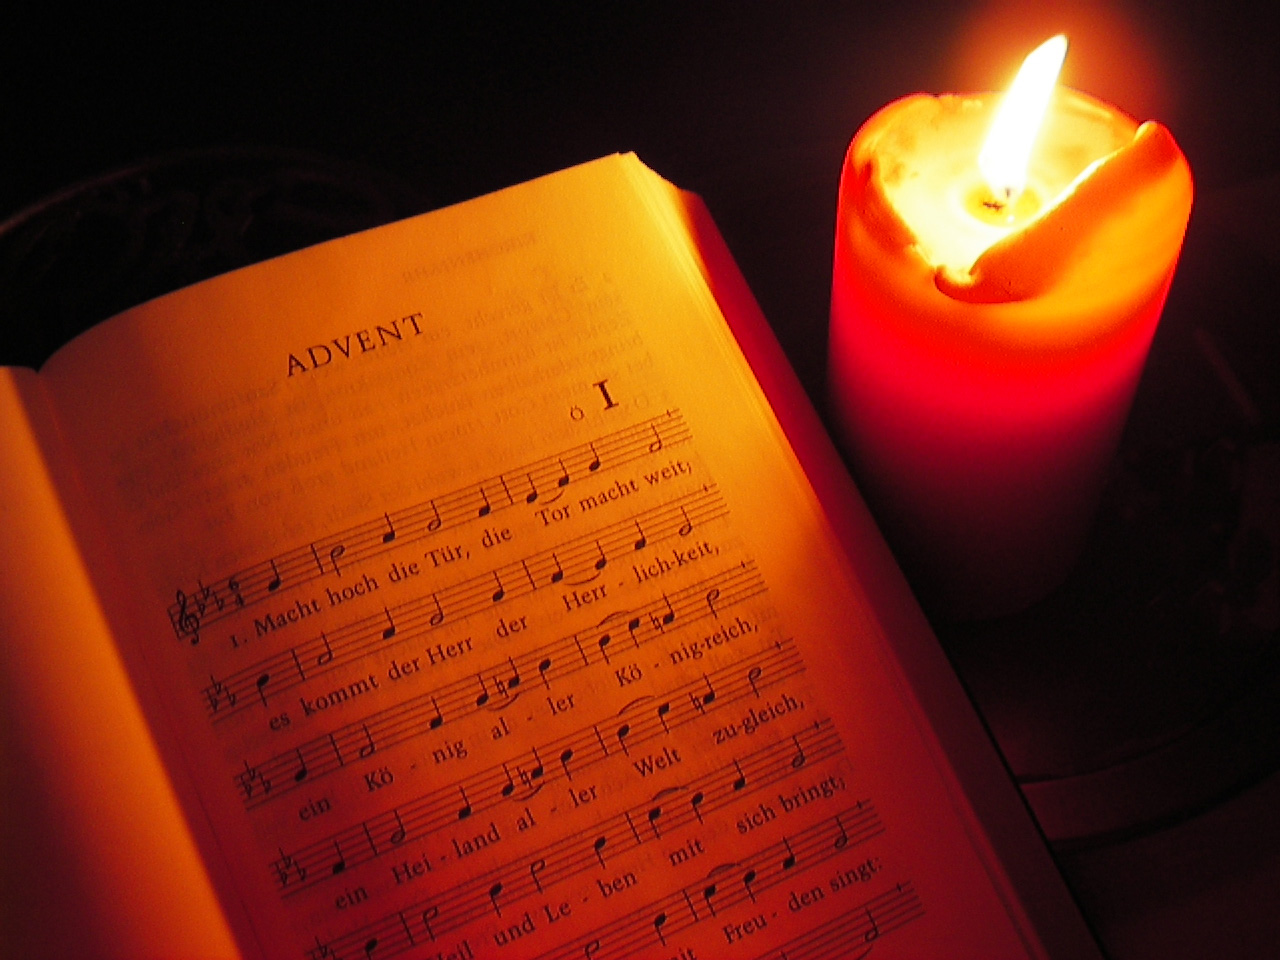 Advent Evening Prayer, Thurs. Dec 4, 11, 18 @ 7 p.m.